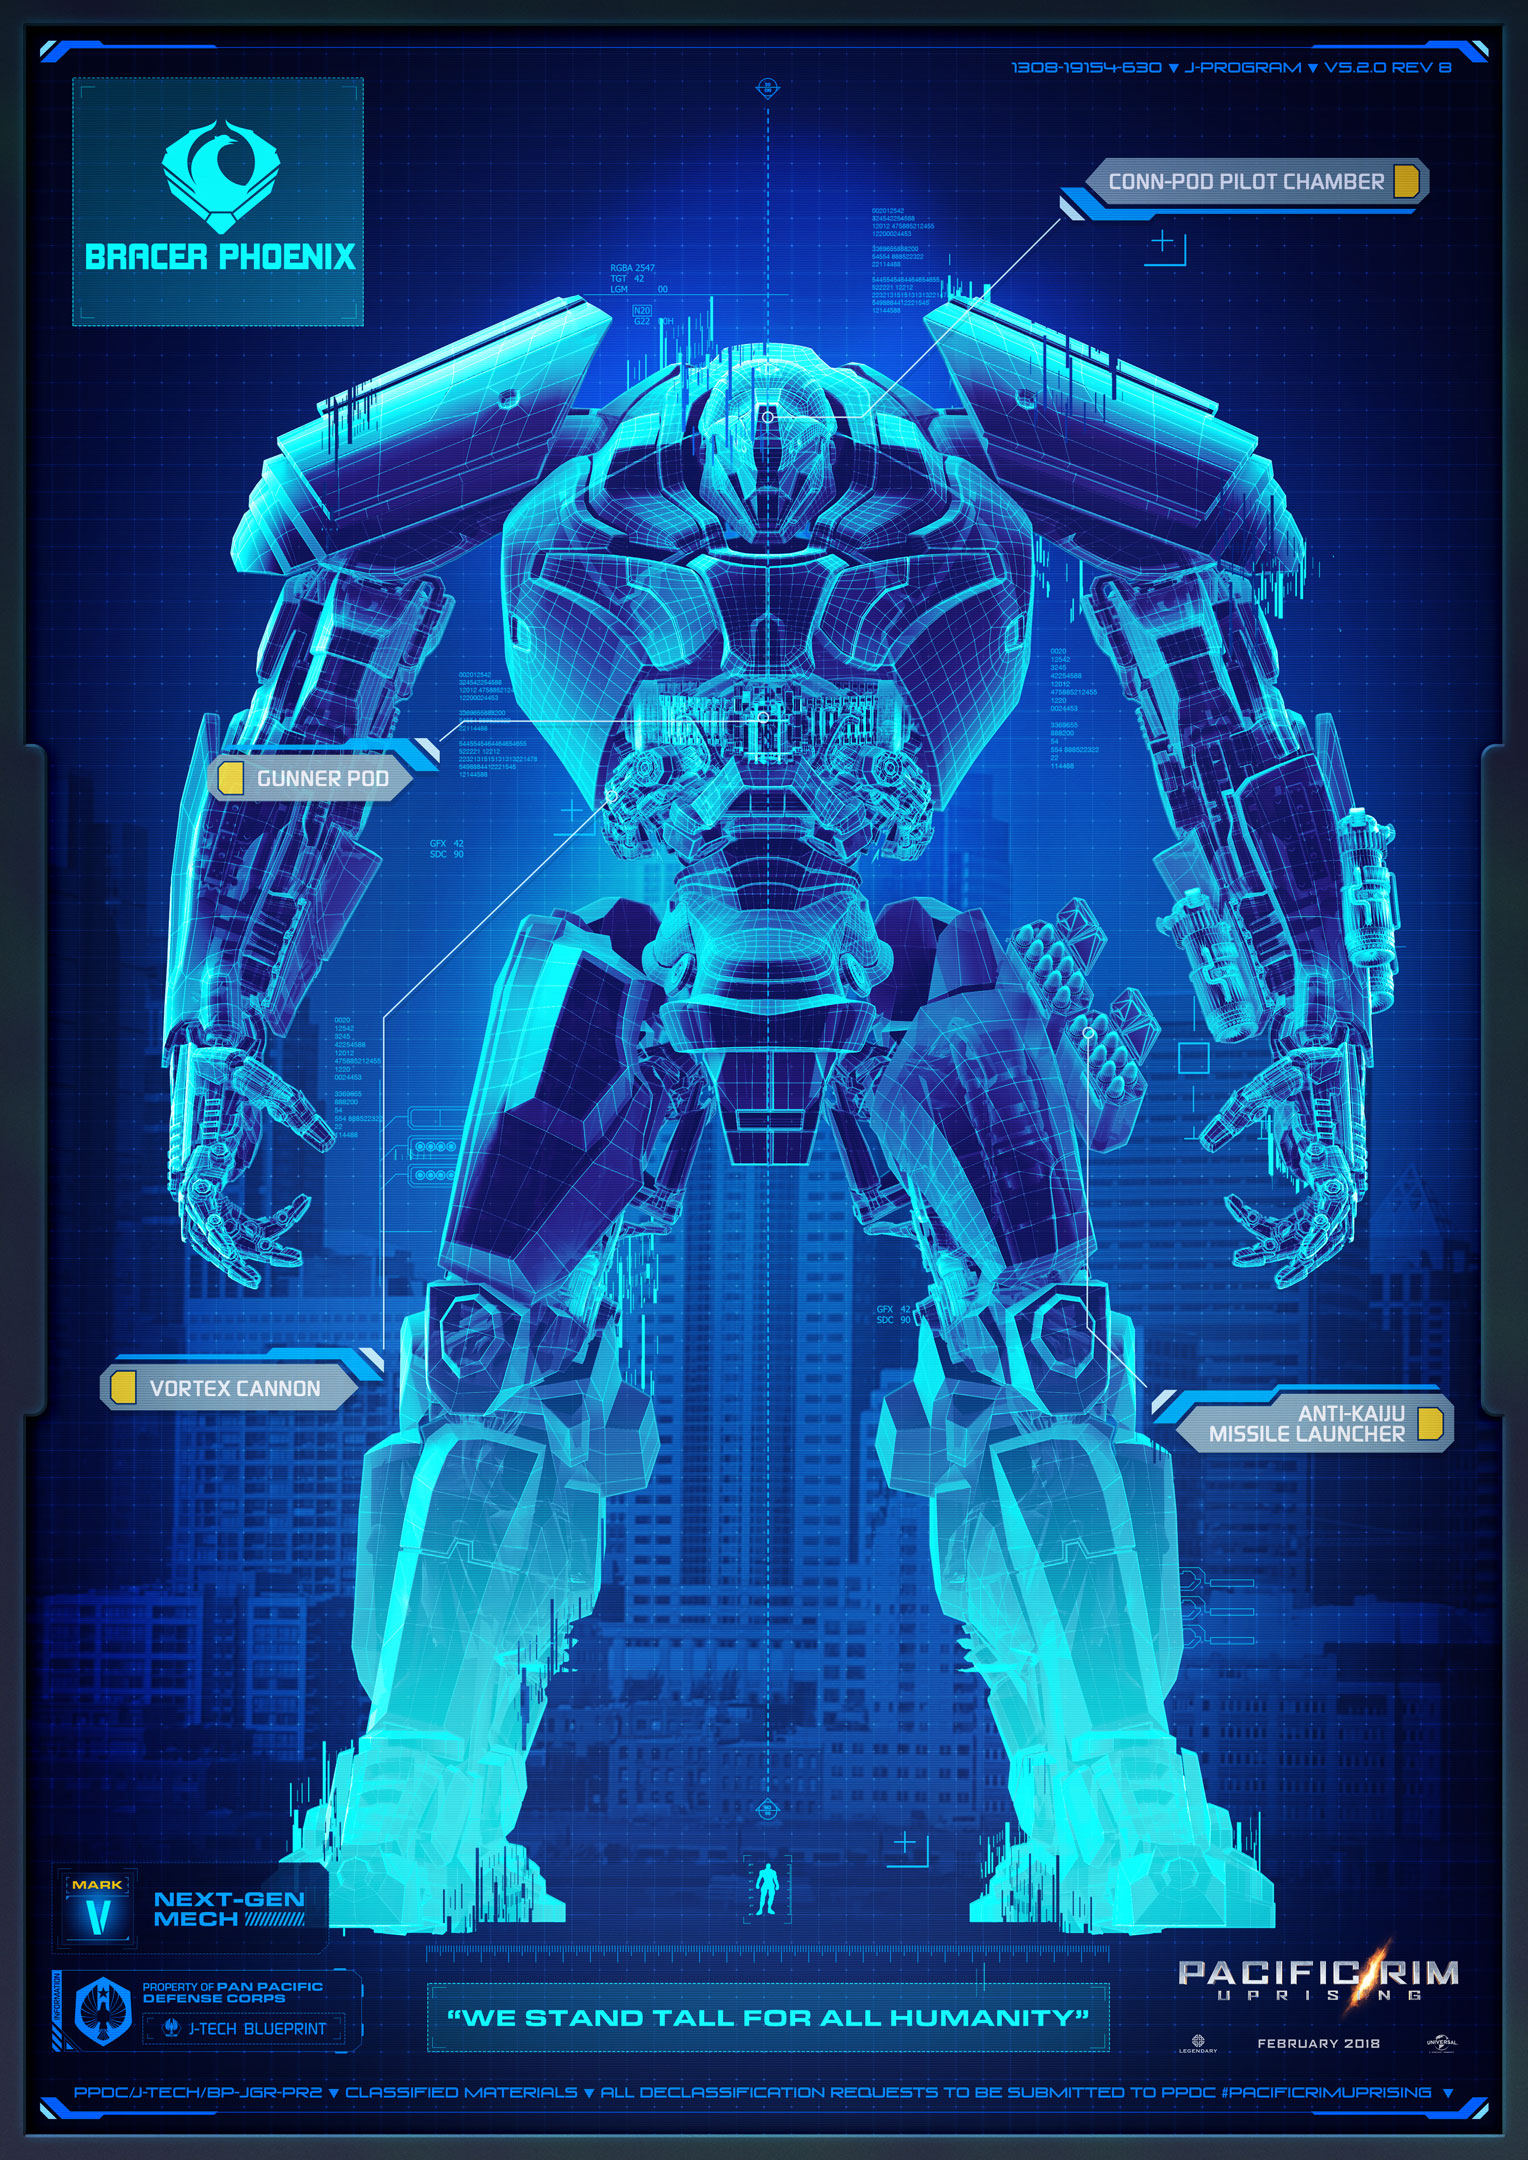 Bracer Phoenix | Pacific Rim Wiki | FANDOM powered by Wikia